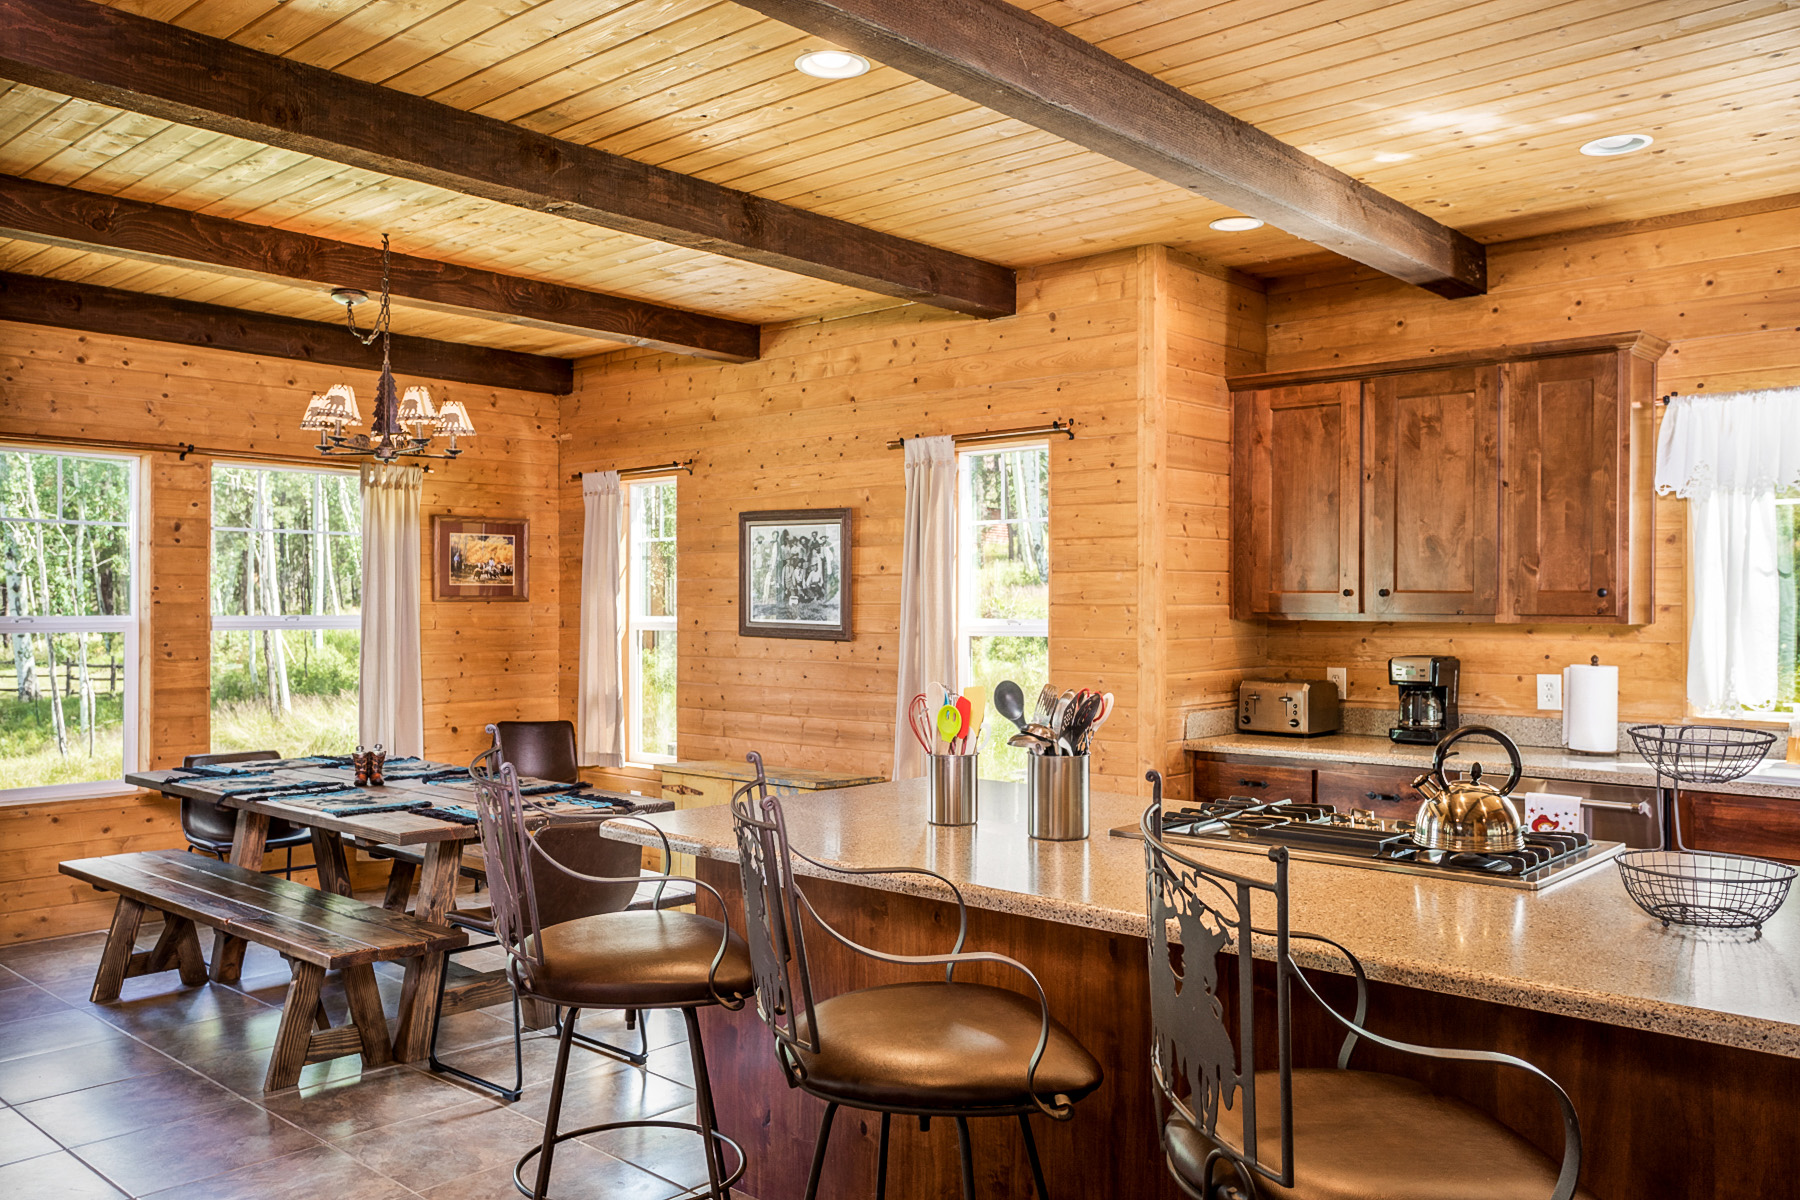 Real estate photography services - residential kitchen and dining room